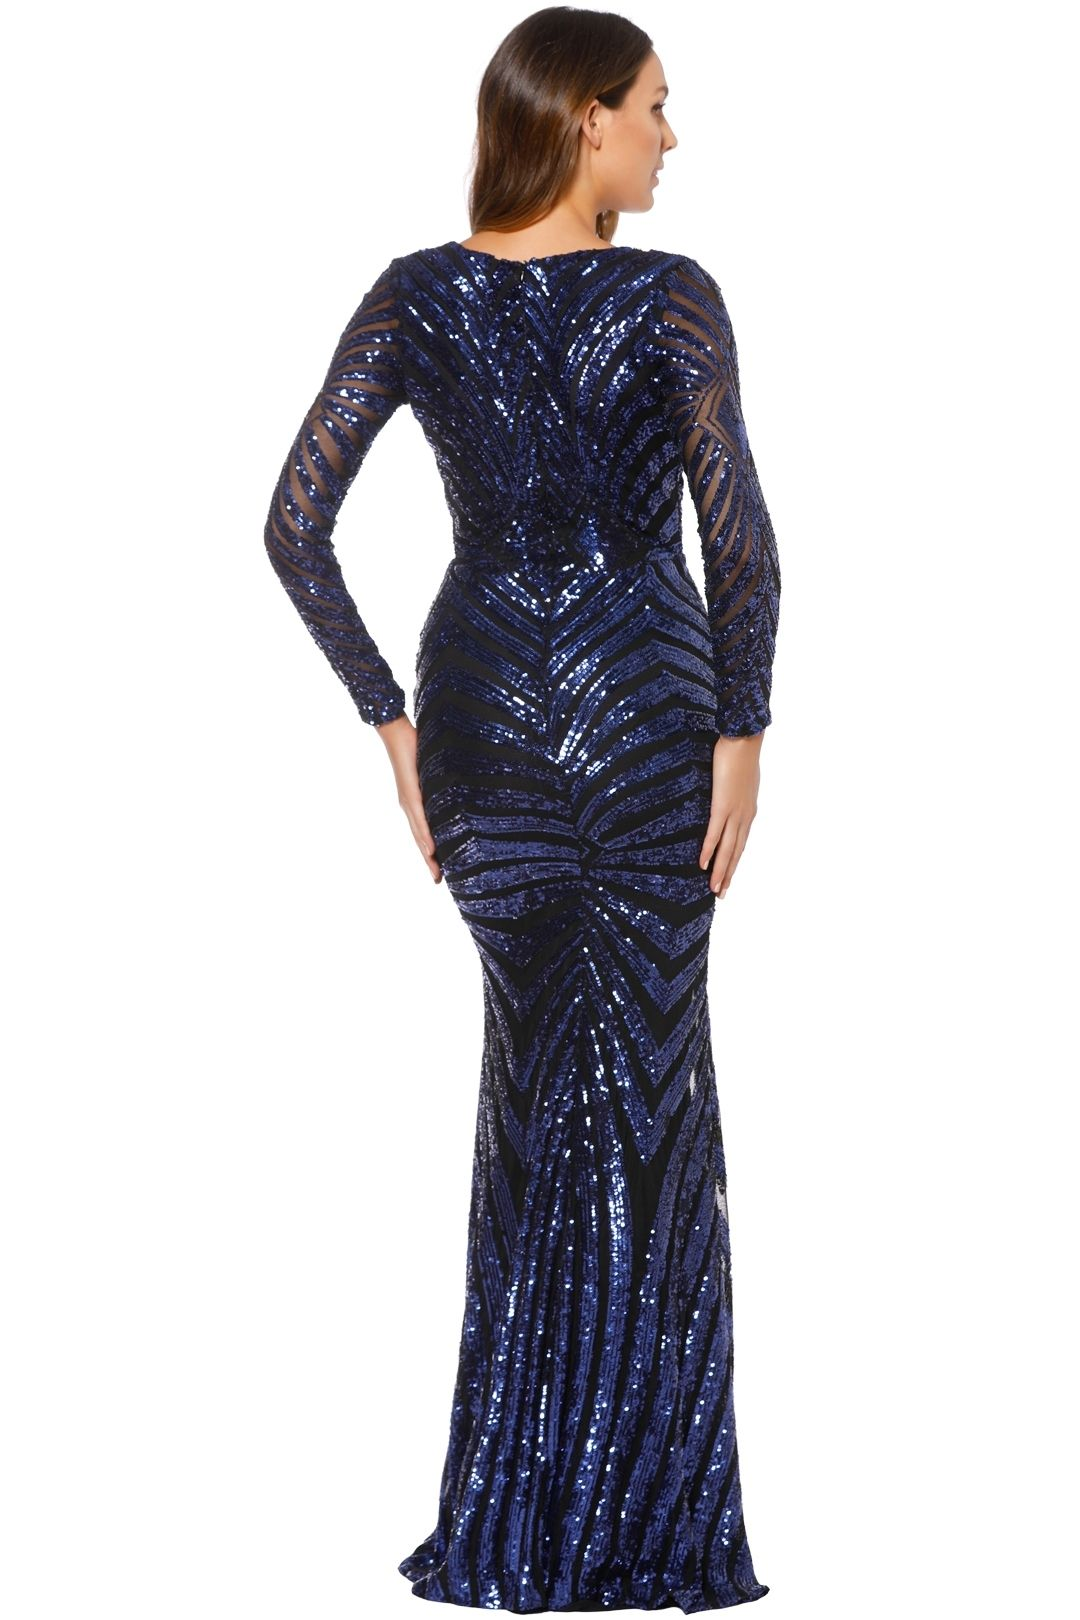 Image result for NAVY AND GOLD SEQUIN GOWN